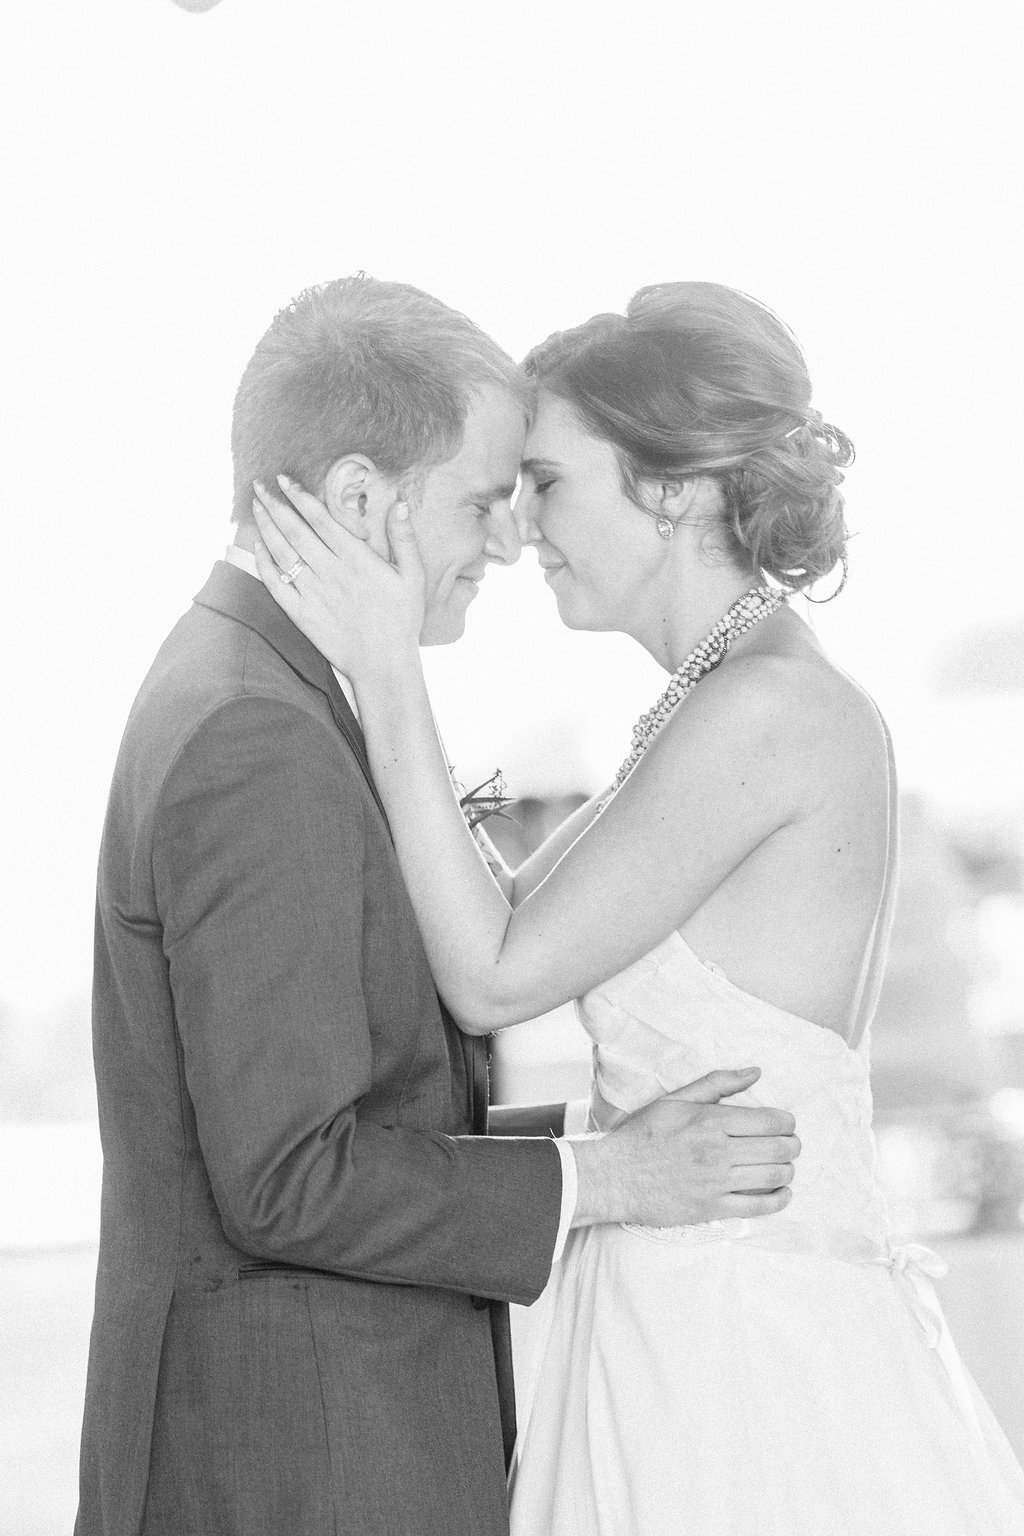 Bride and groom embracing during first dance in black and white